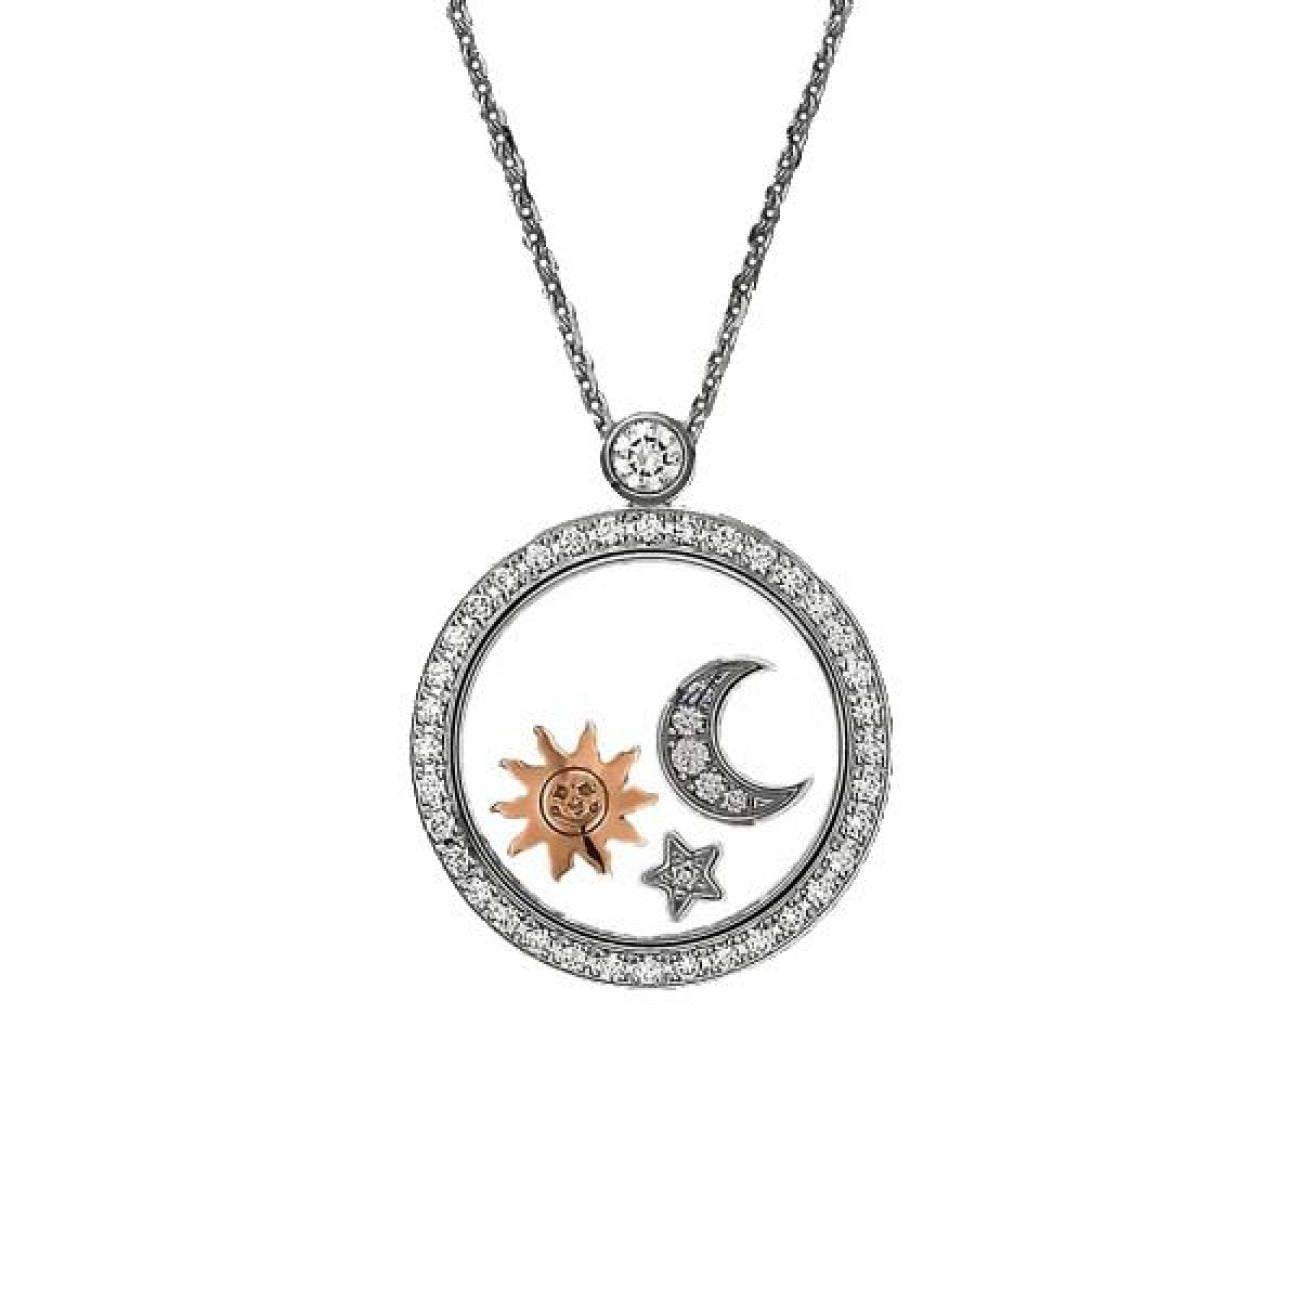 Chopard Jewelry - Happy diamonds star moon and sun Necklace | Manfredi Jewels